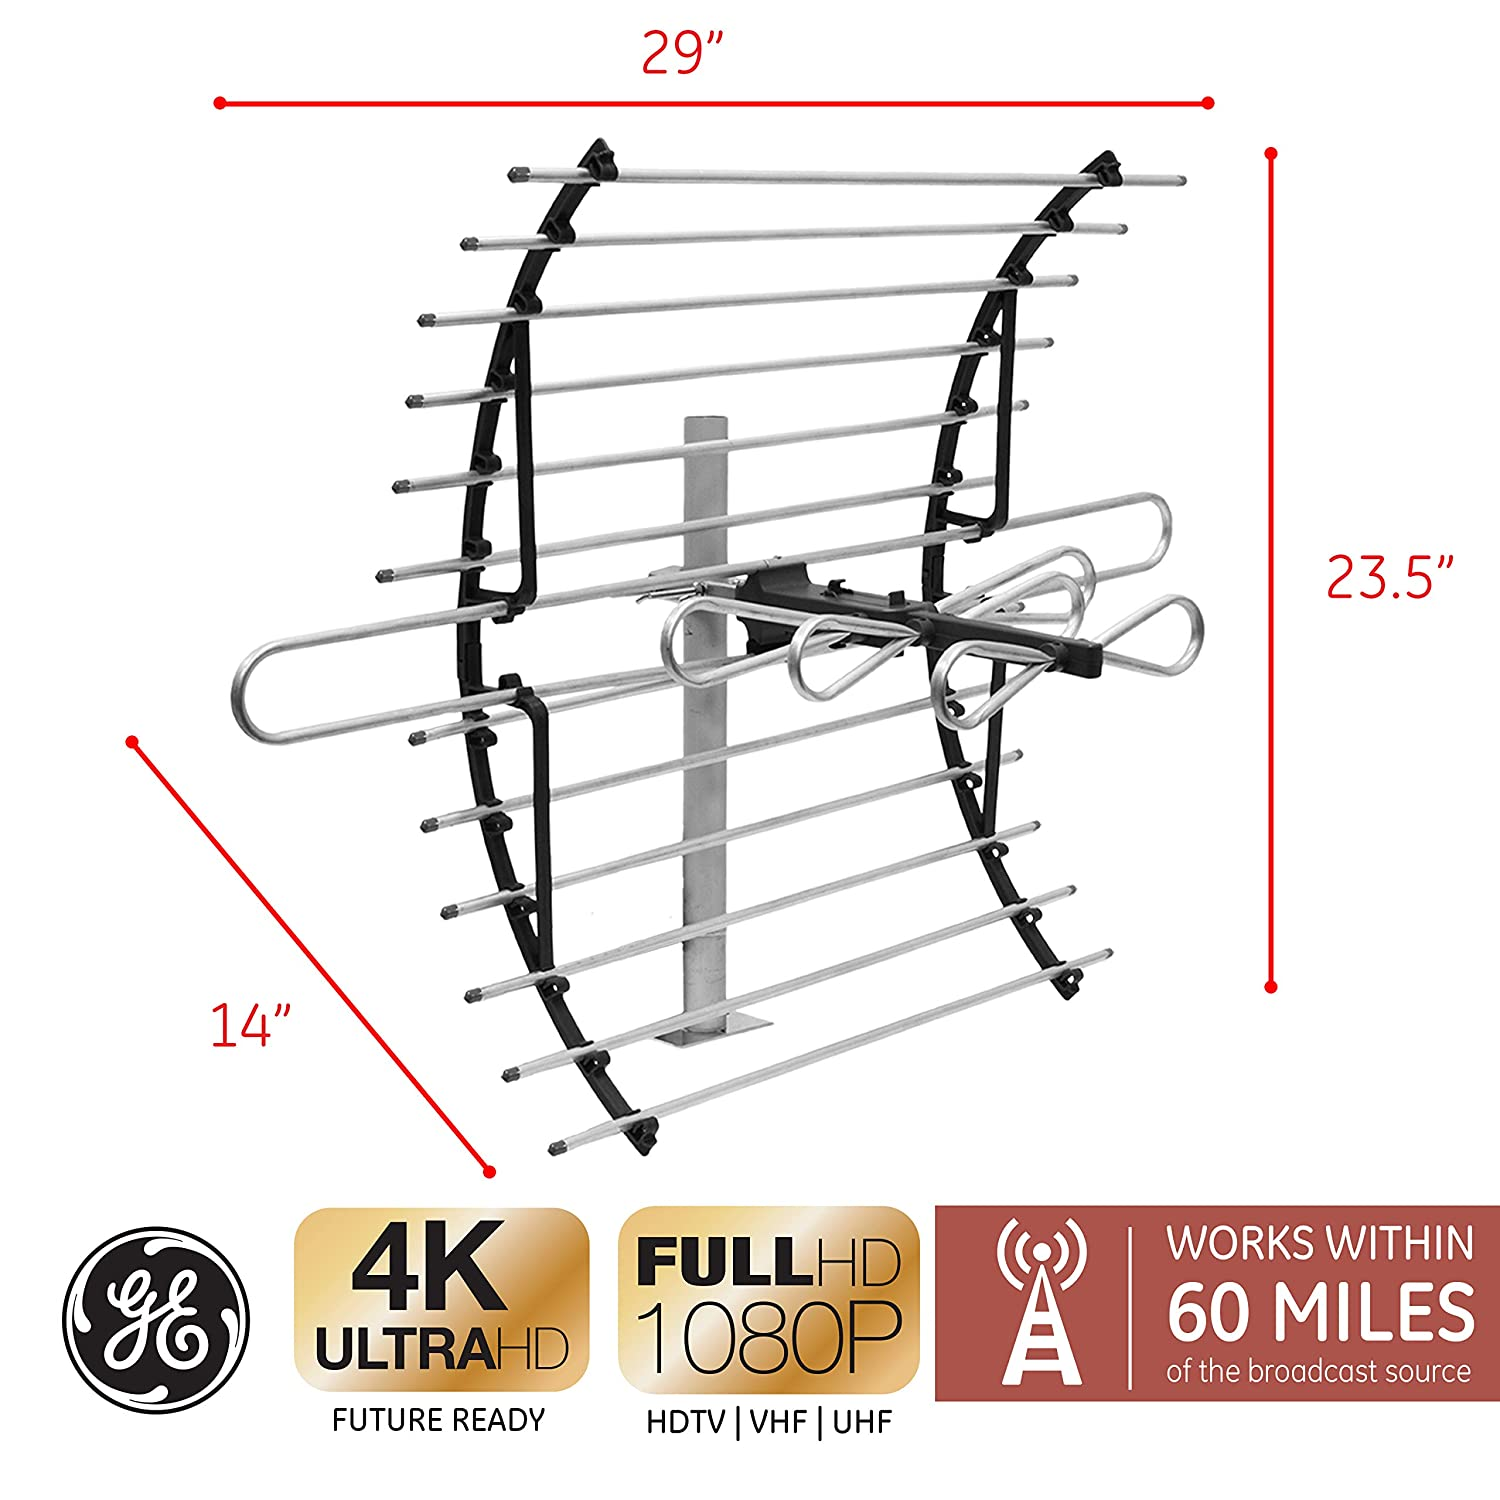 Ge Pro Attic Mount Tv Antenna Long Range Yagi Wiring Diagram Directional Digital Hdtv 4k 1080p Vhf Uhf Compact Design